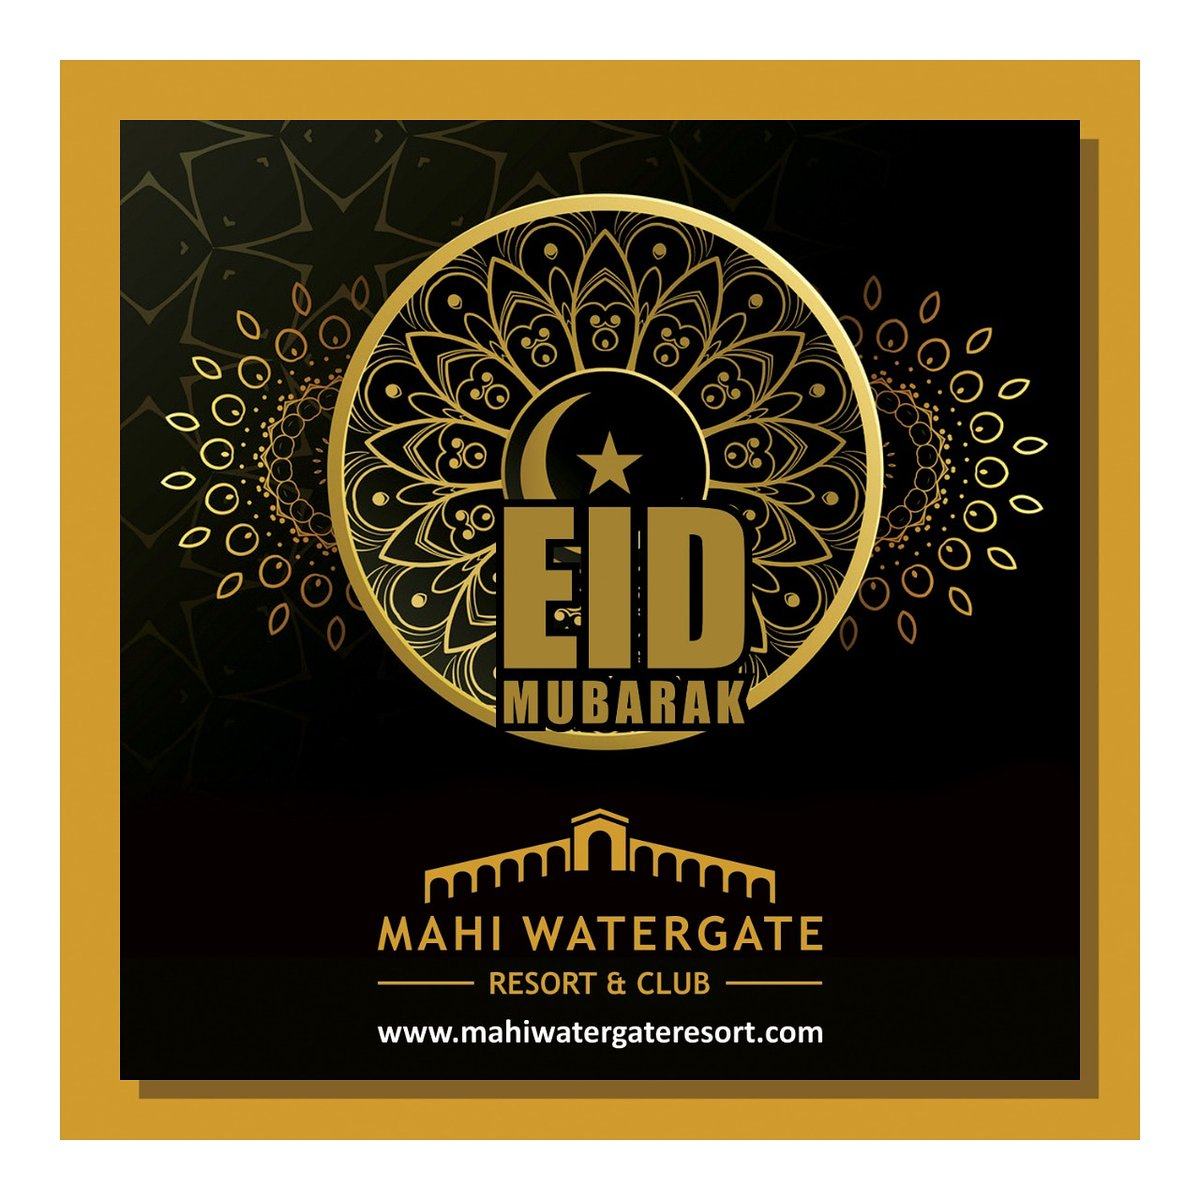 May Allah ease your hardships and shower you with loads of peace and prosperity on Eid. Have a blessed time! Eid Mubarak! #Eid2020 #festival #eid  #resorts #riverfront #waterrides #swimmingpool #hangingbridge #nature #natureview #tentstay #closetonature #mujpur #padra #vadodara https://t.co/RIx7l2RqQT